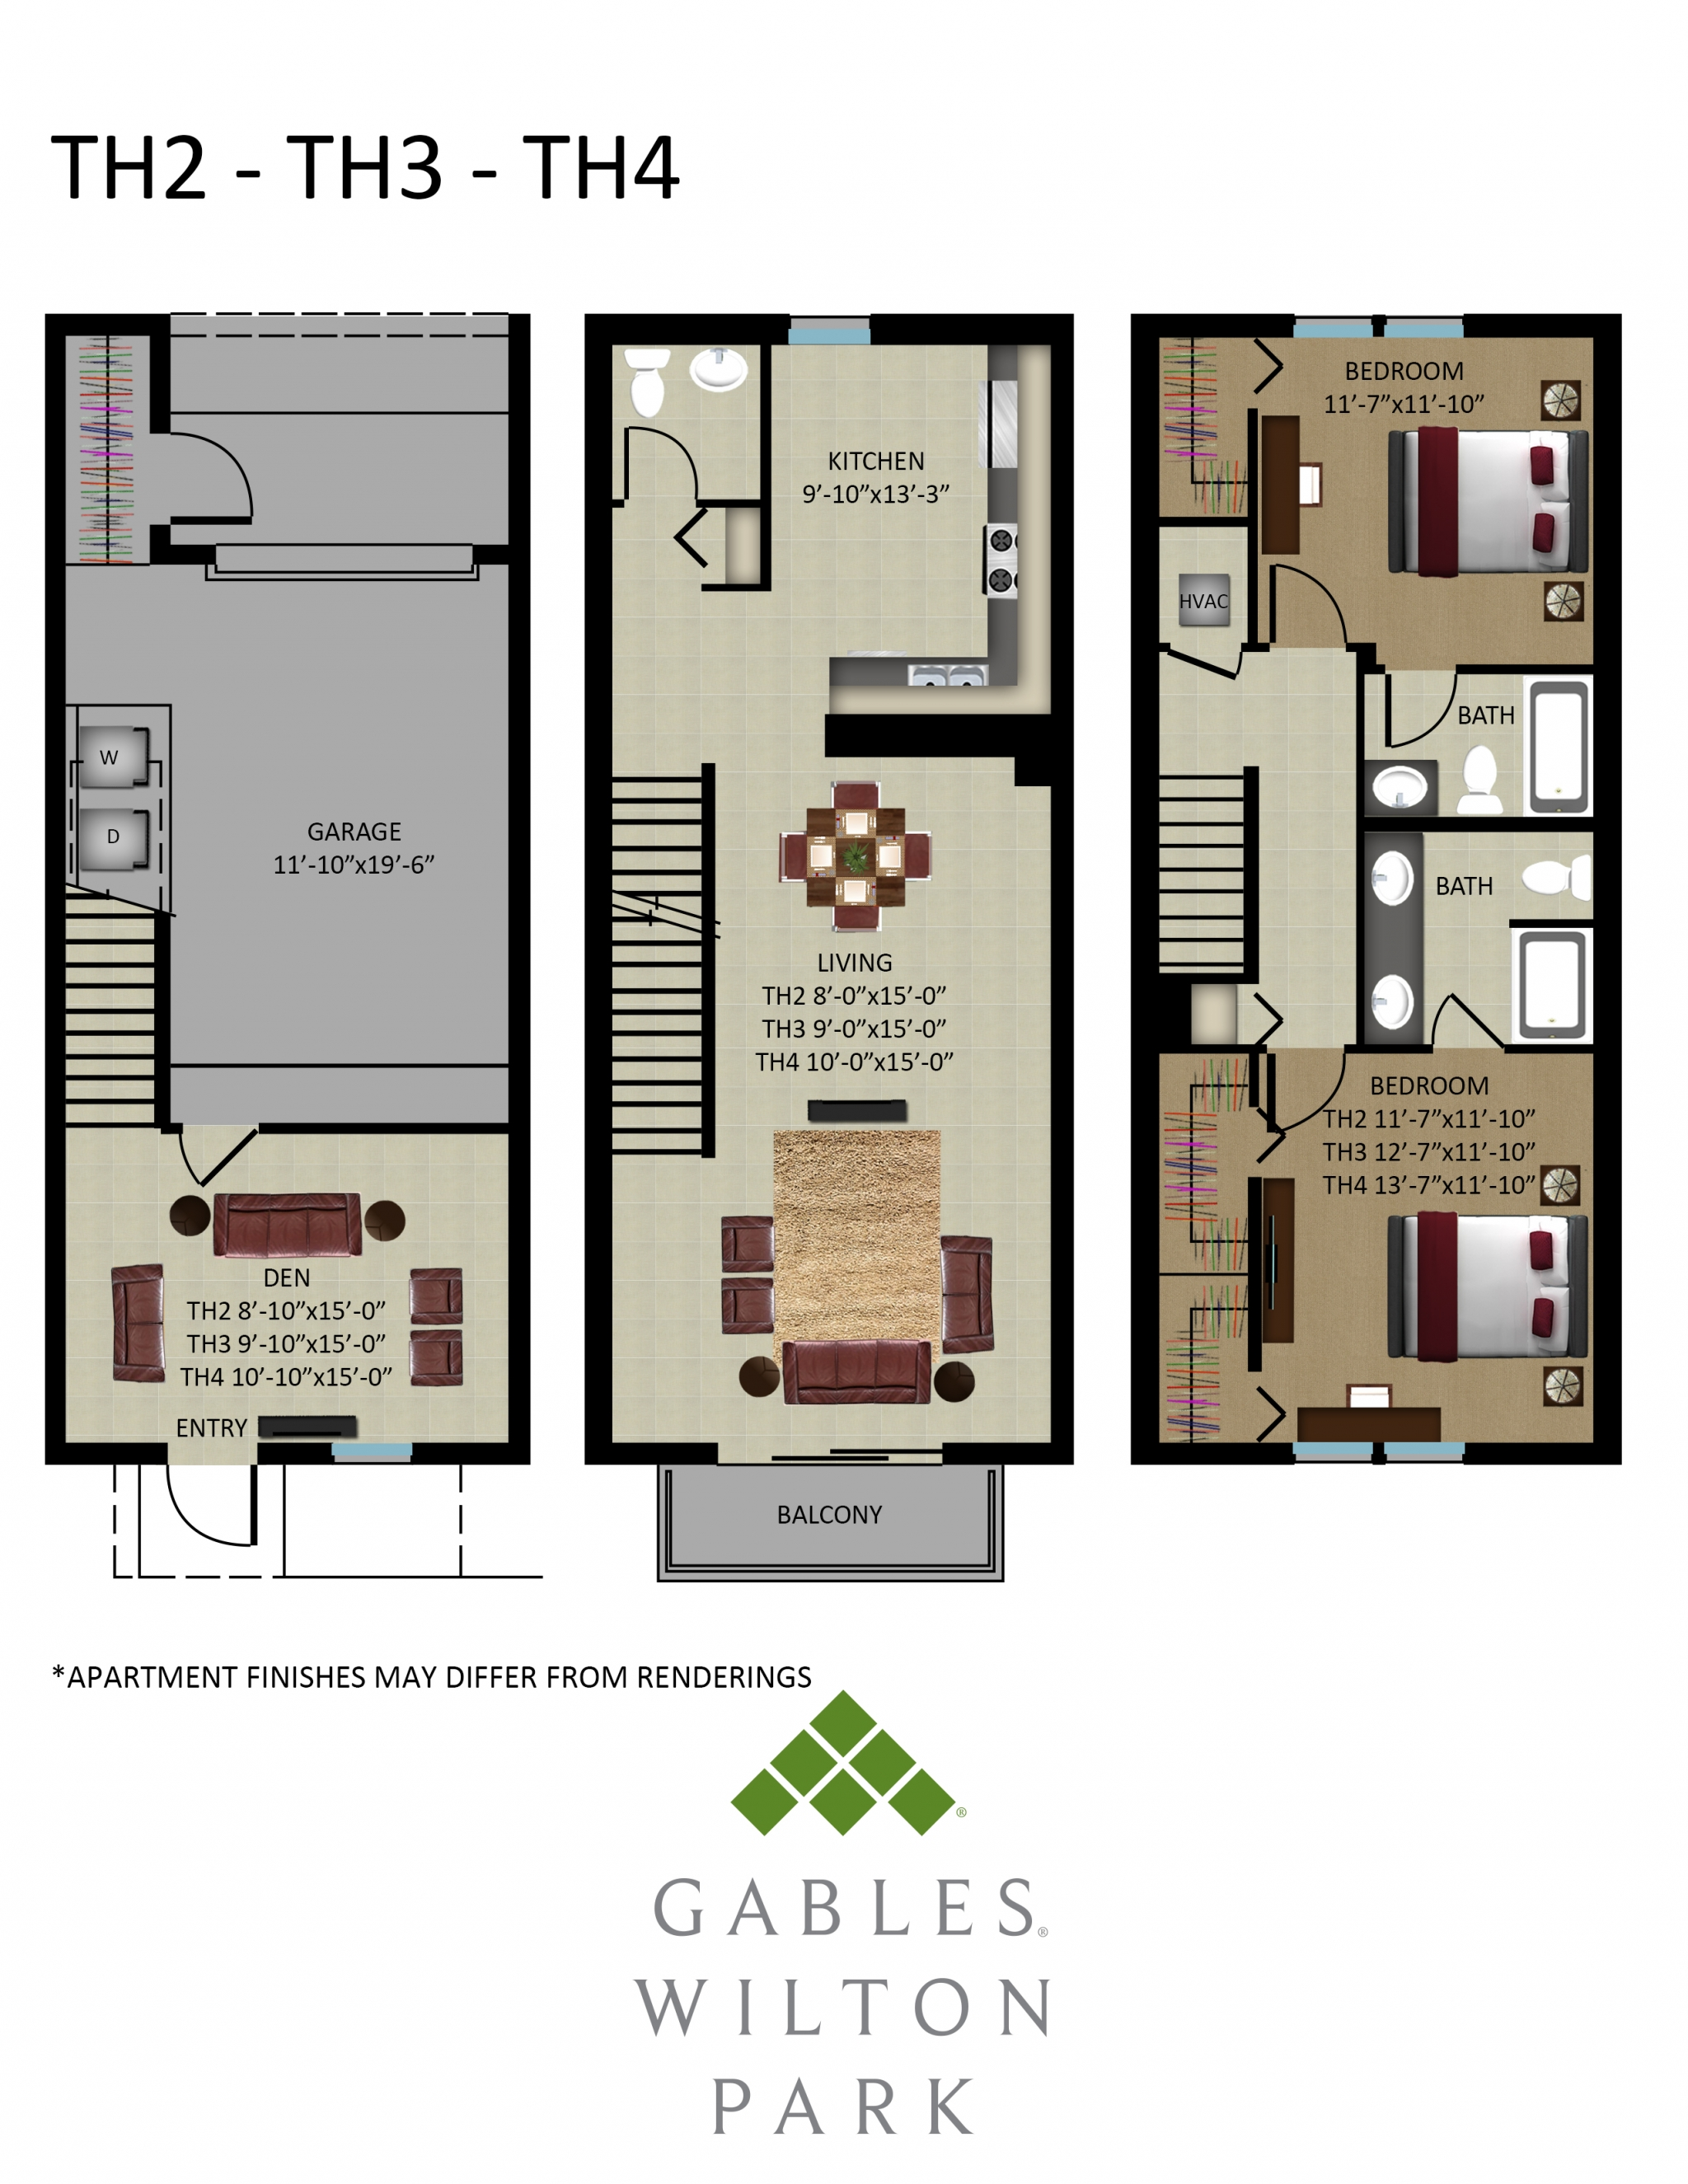 2 Bed / 2.5 Bath Apartment in Wilton Manors FL | Gables ...